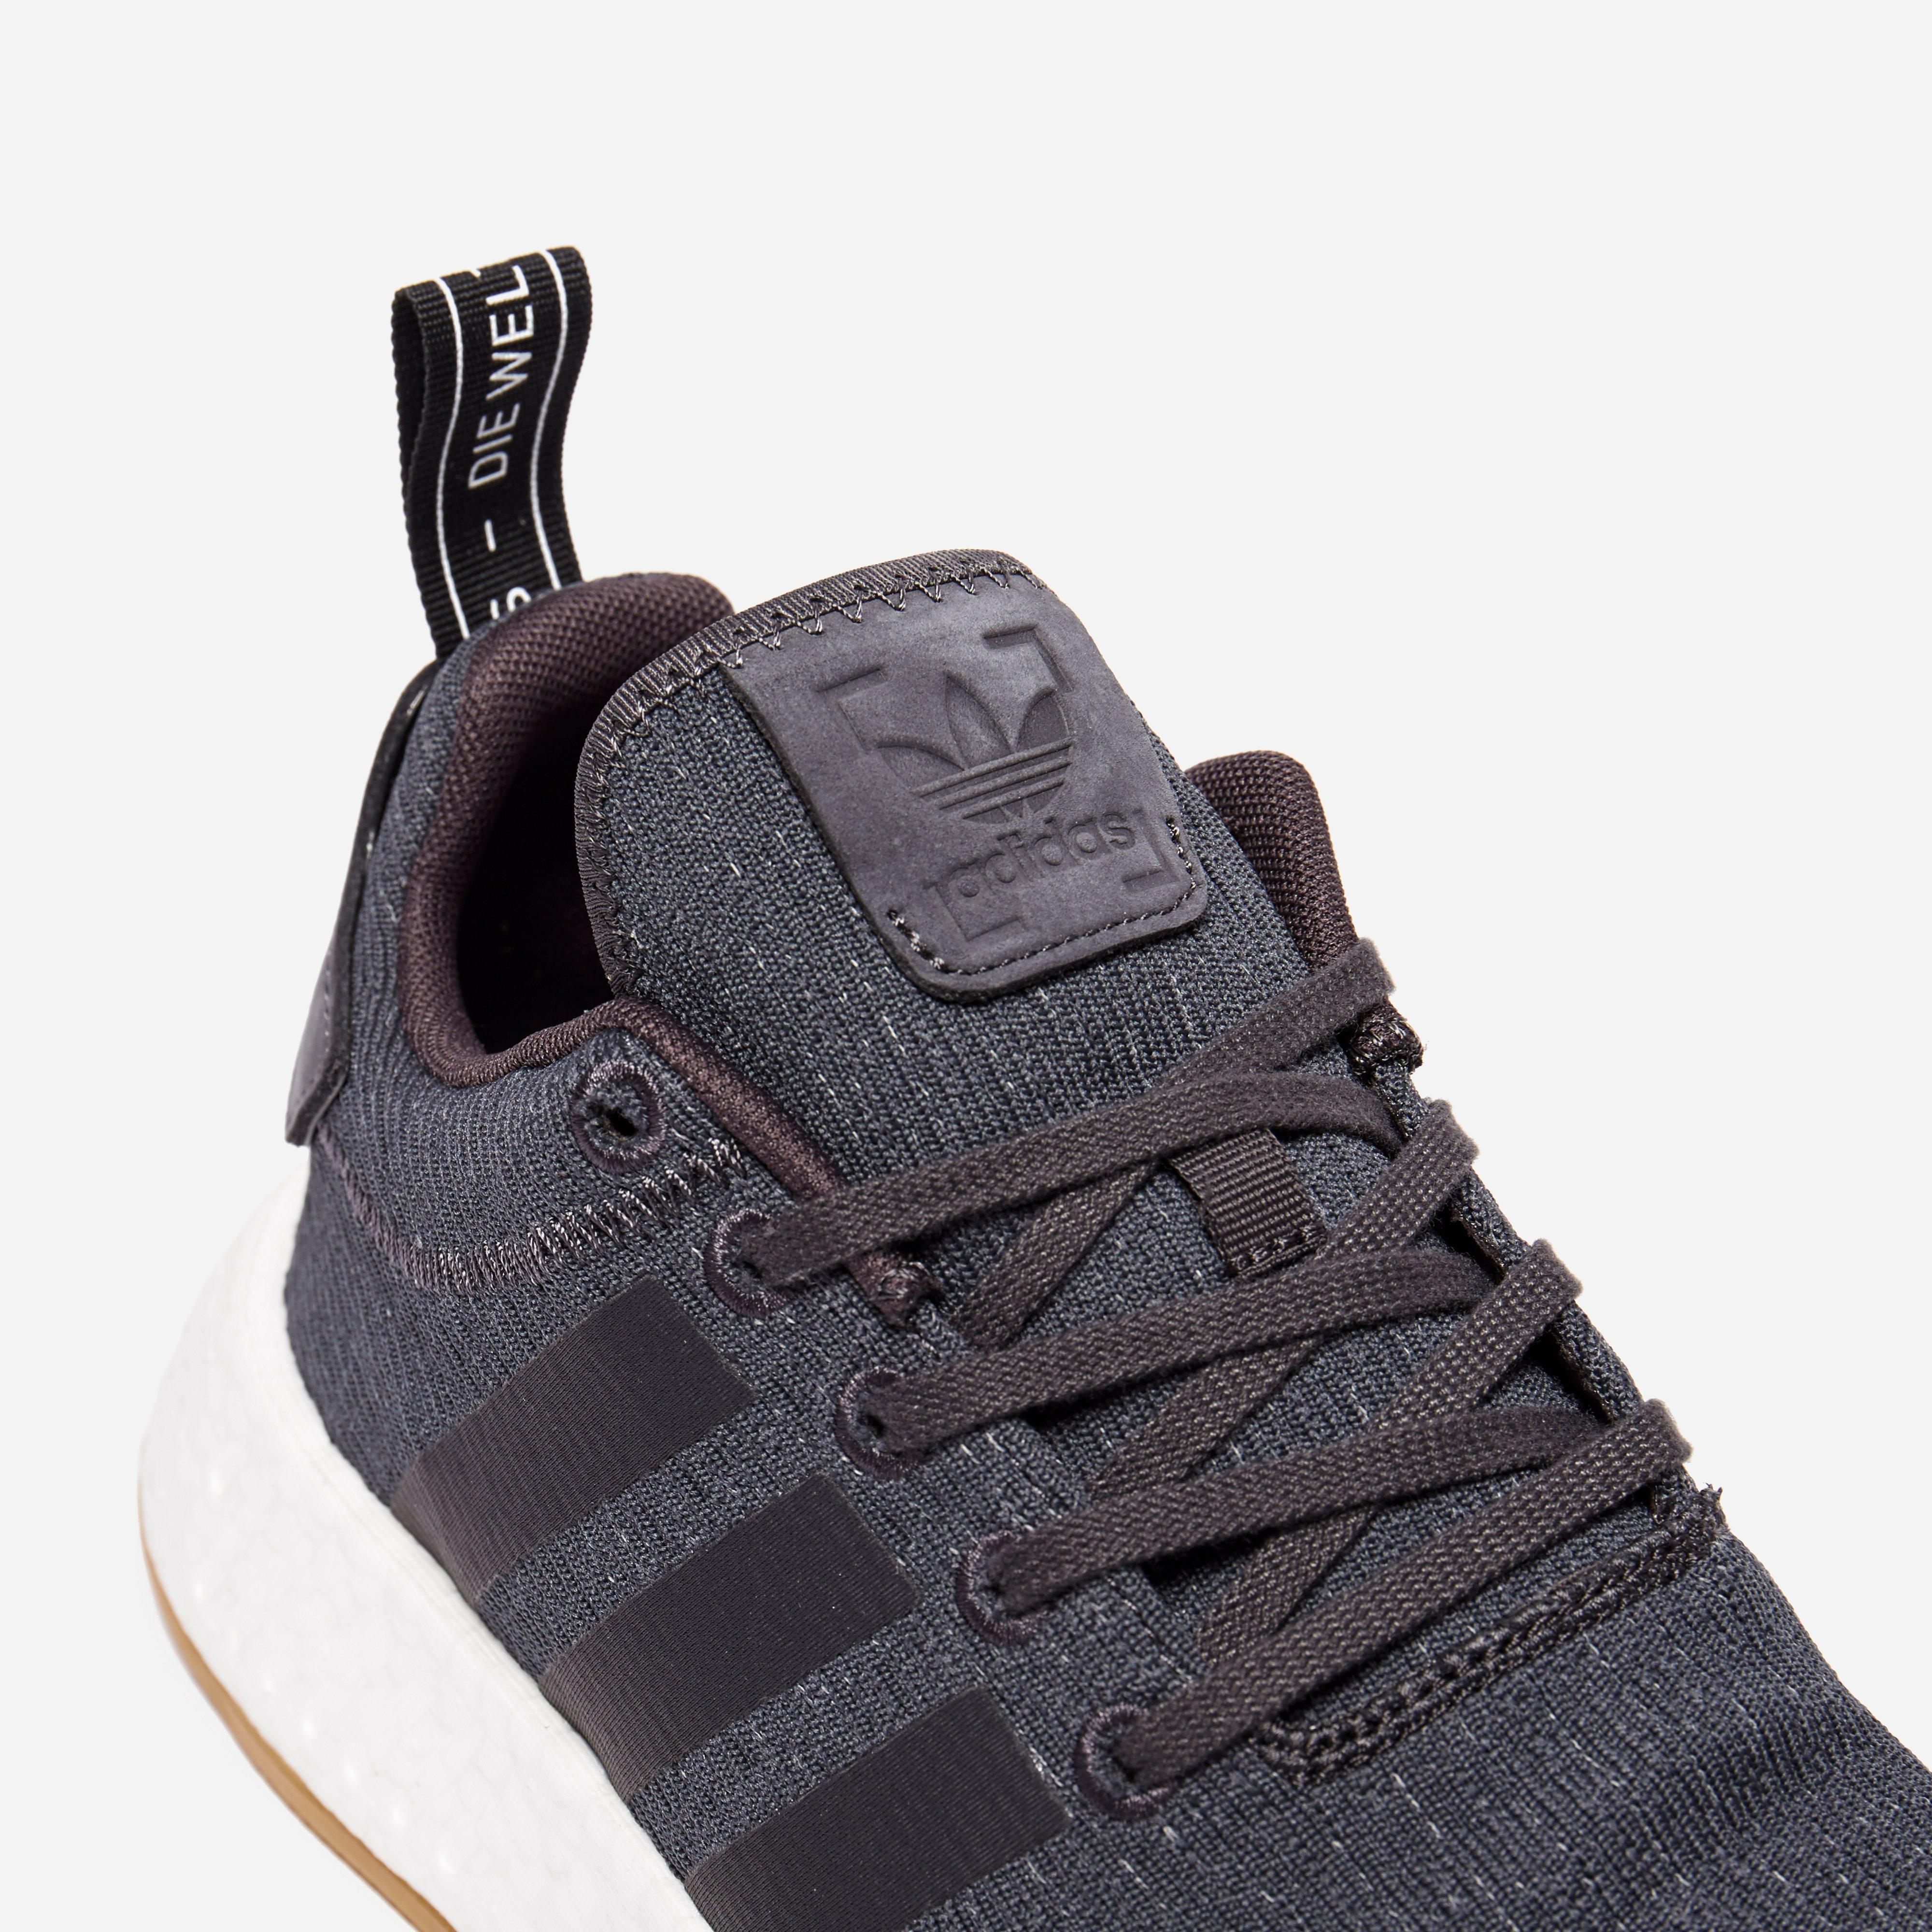 quality design fa4a5 e5798 Lyst - adidas Originals Nmd R2 Winter Pack in Gray for Men